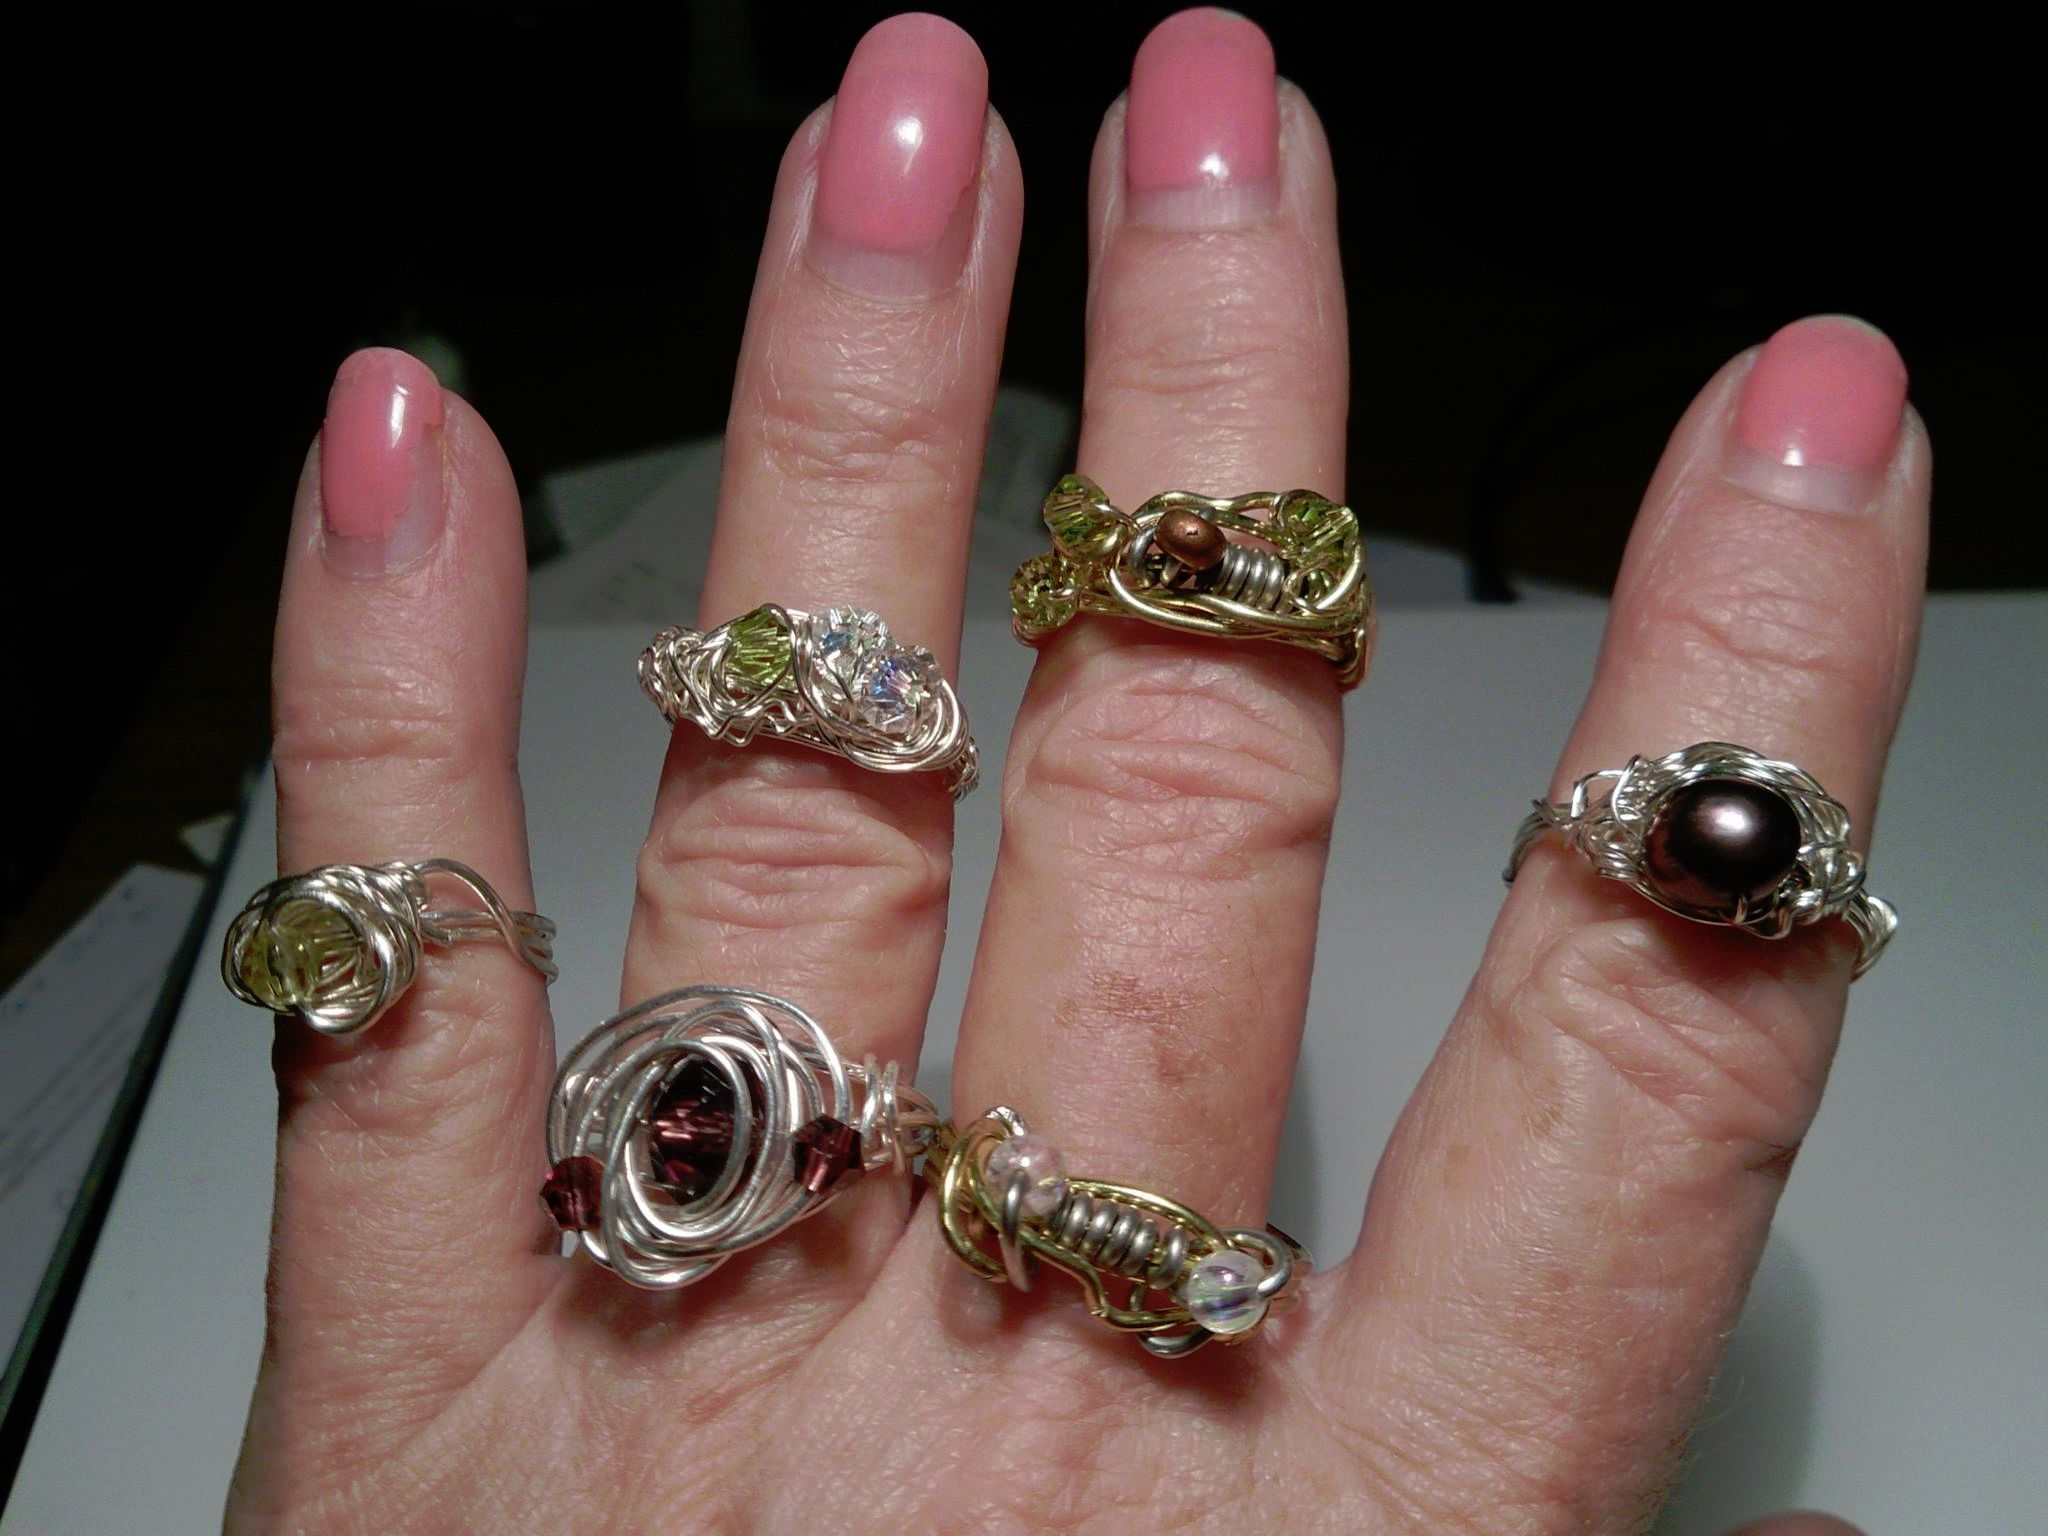 Rings: brass or silver craft wire, bicones and beads, freshwater pearl, AB beads.